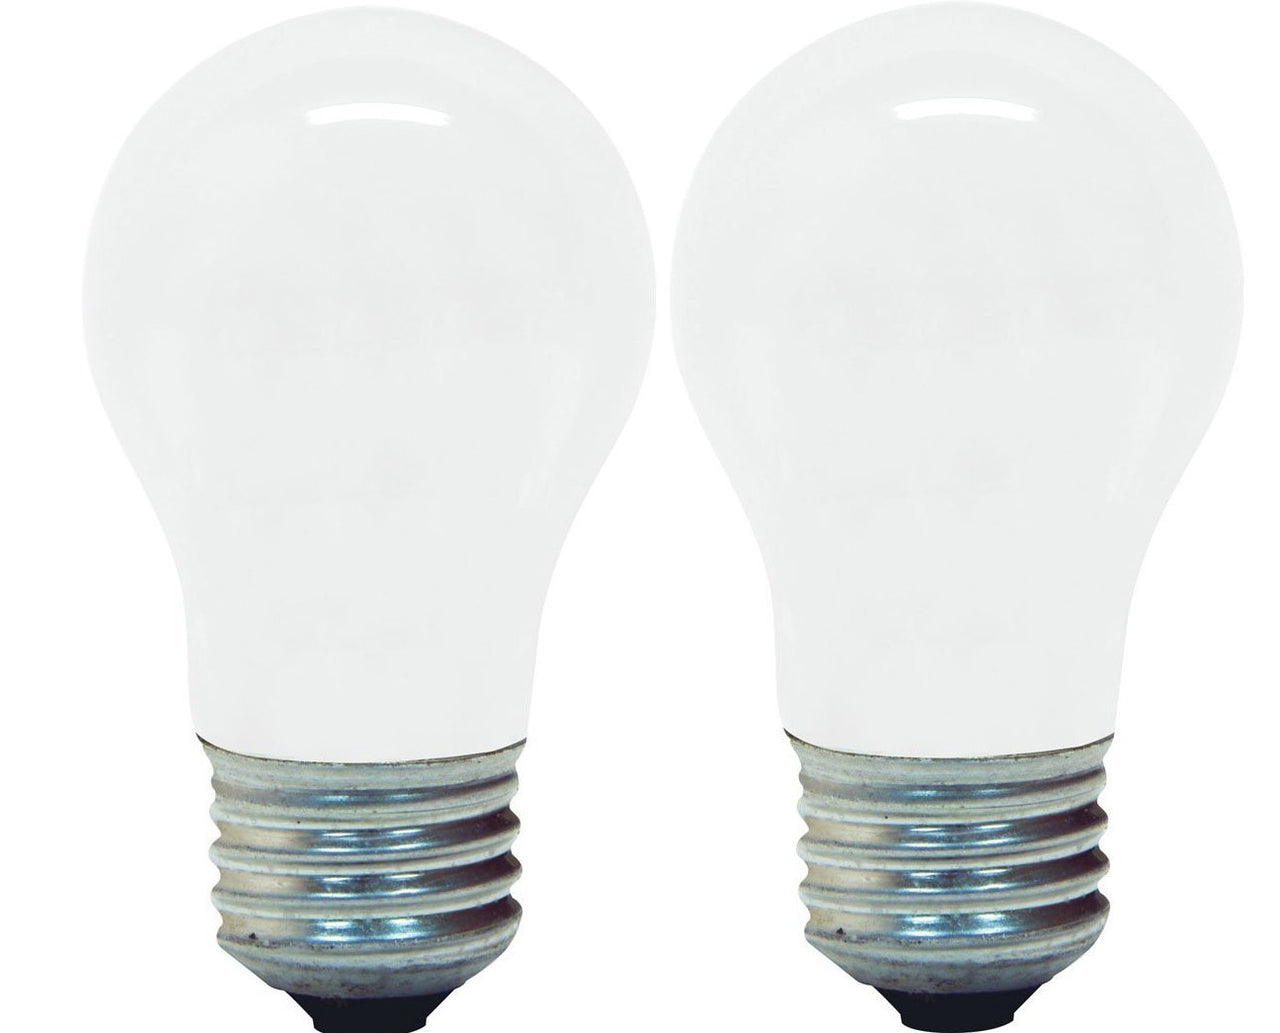 GE Lighting 14029 Incandescent A15 Ceiling Fan Bulb, 60W, Soft White, 2-Pack